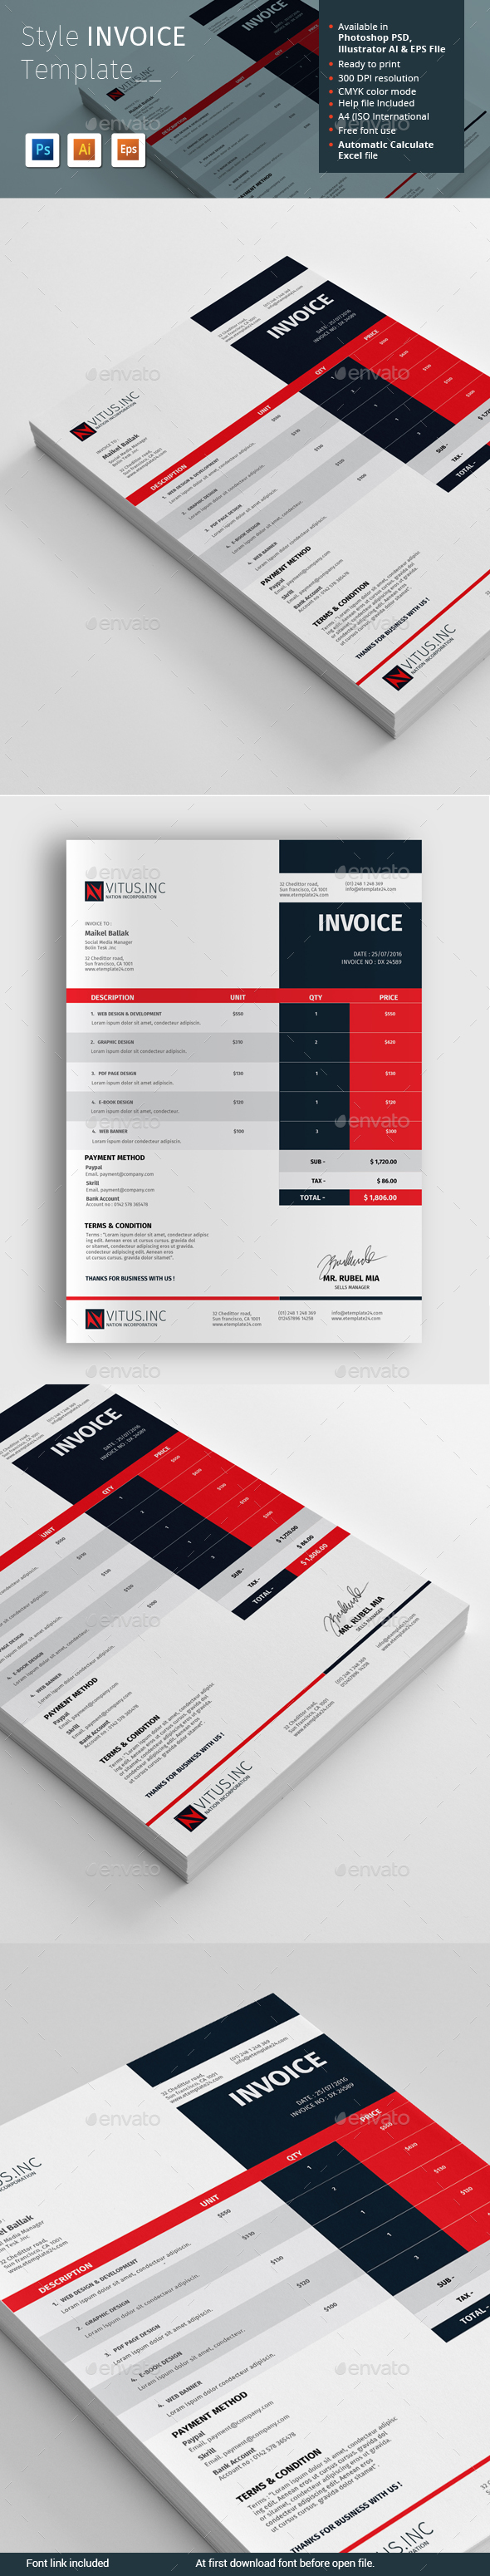 Style Invoice Template by alimran24   GraphicRiver Style Invoice Template   Proposals   Invoices Stationery